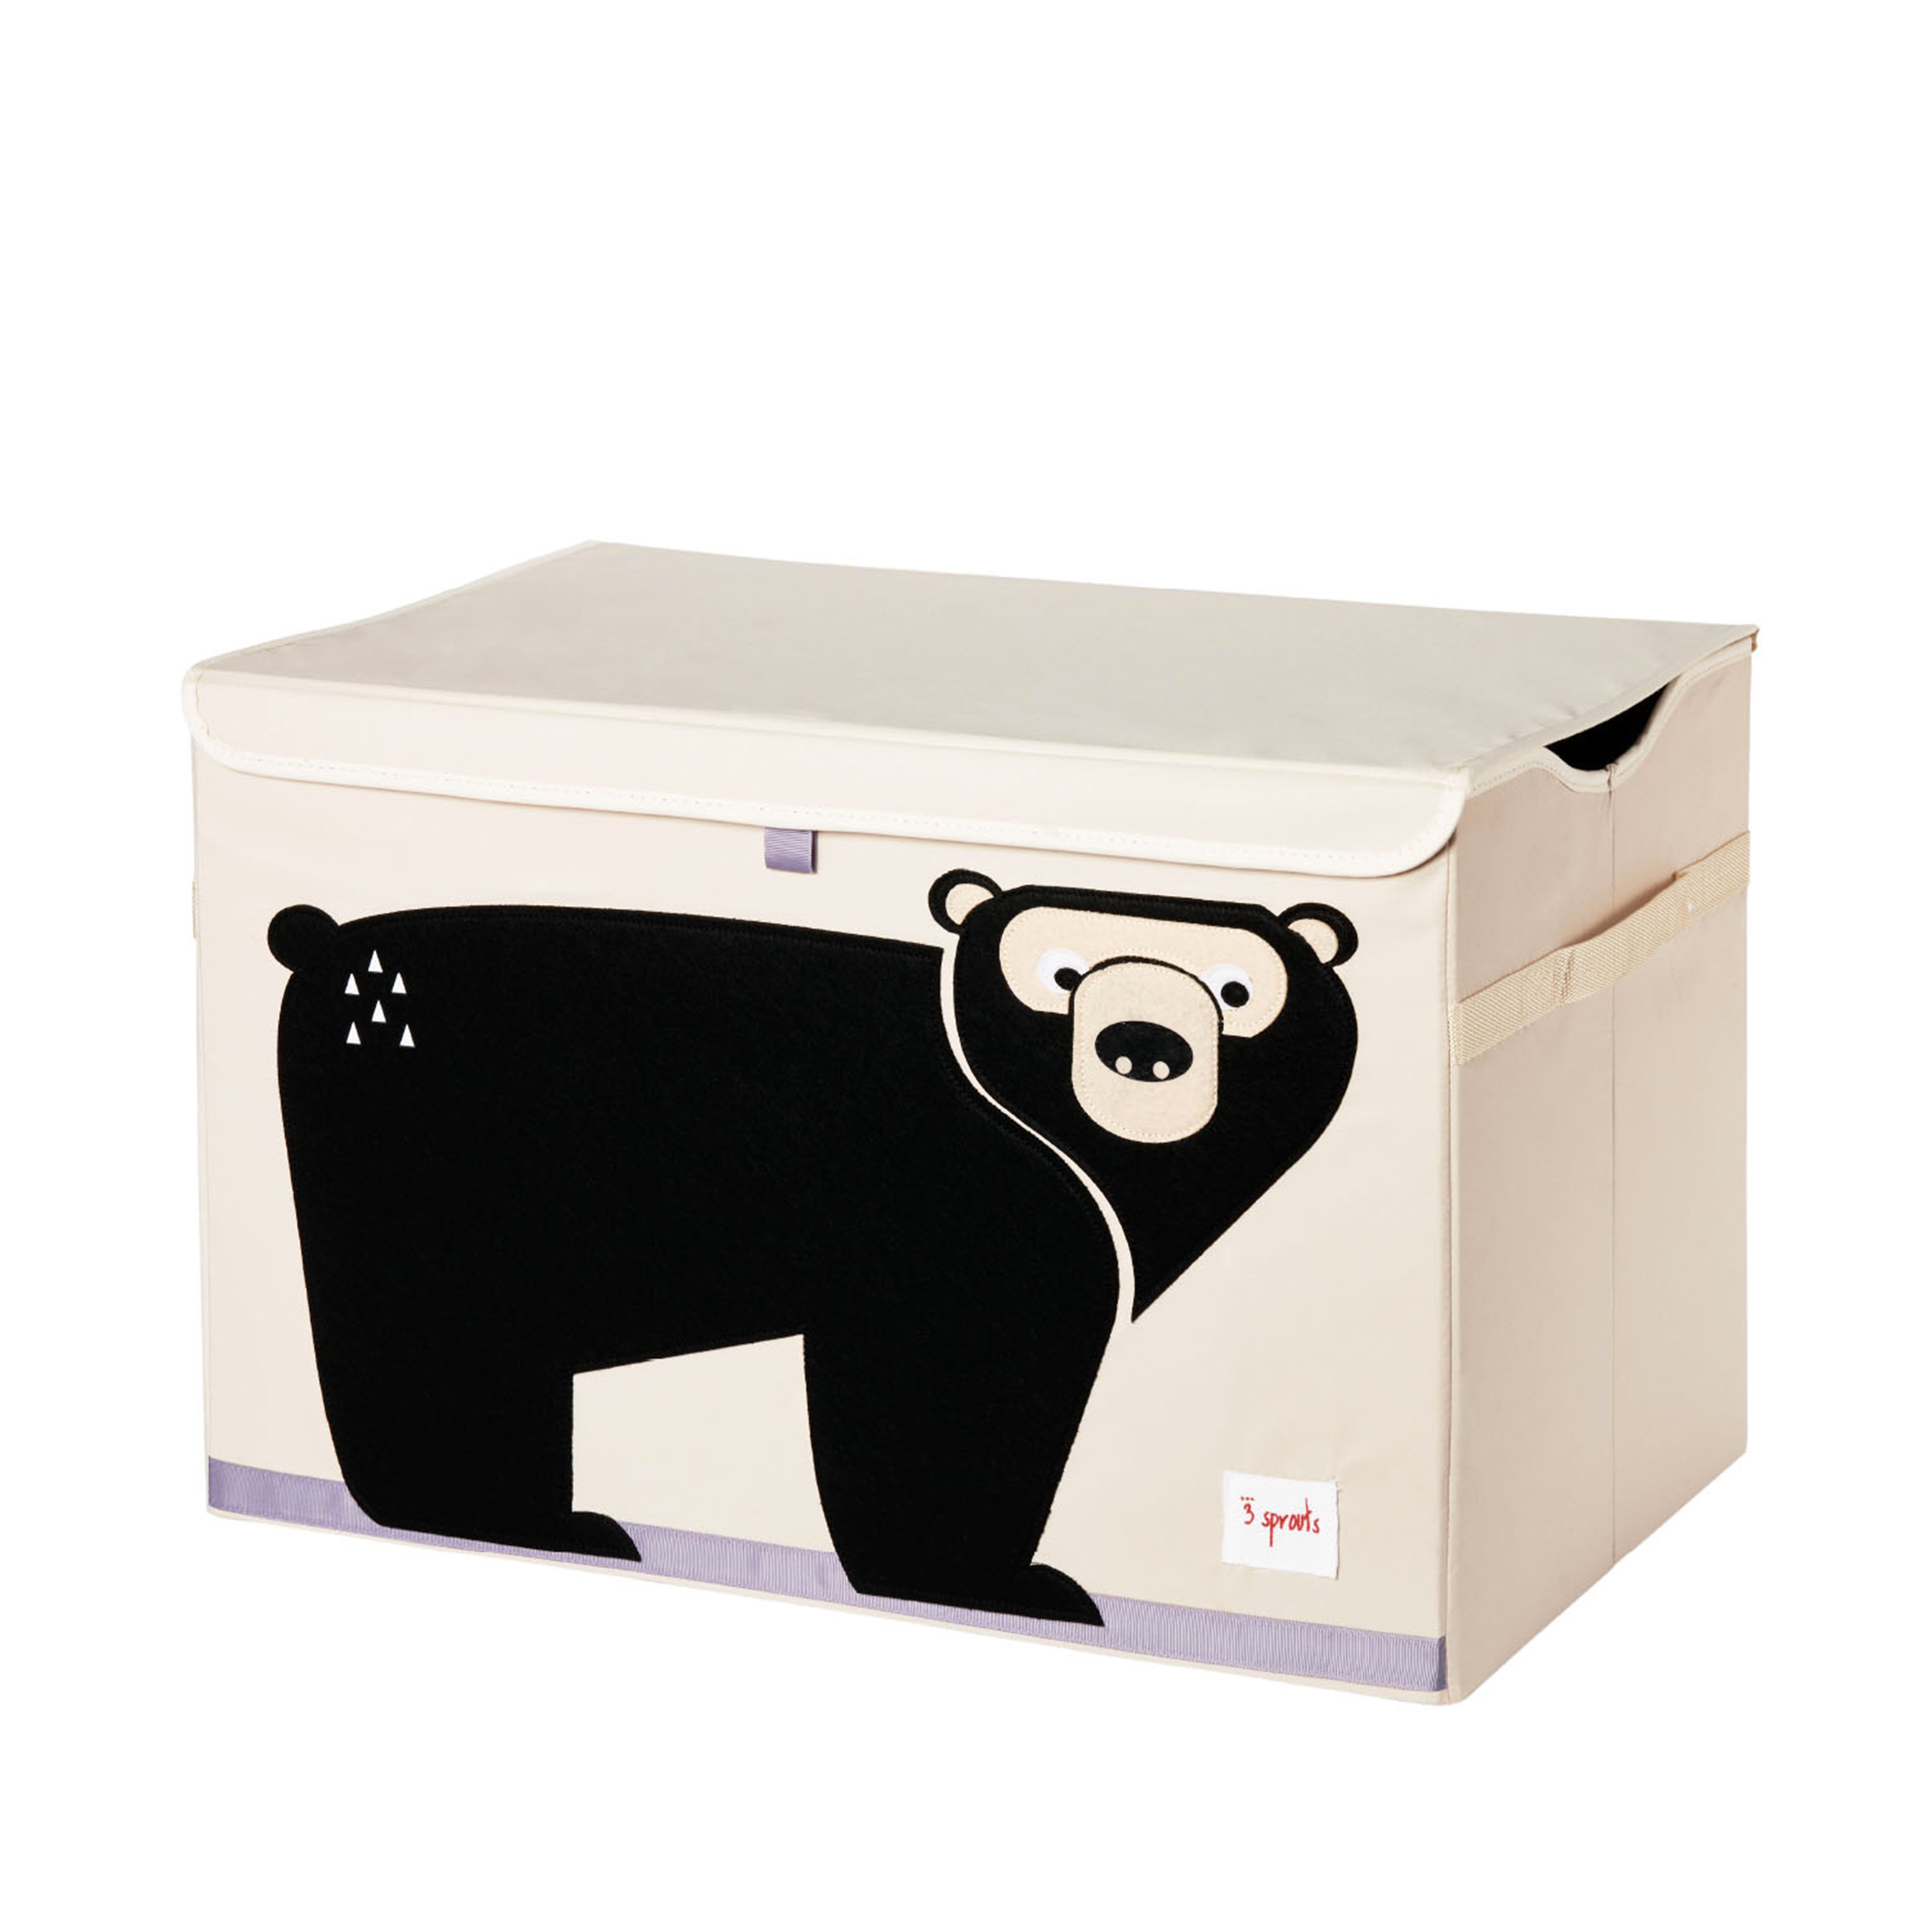 3 Sprouts - Toy Chest - Black Bear